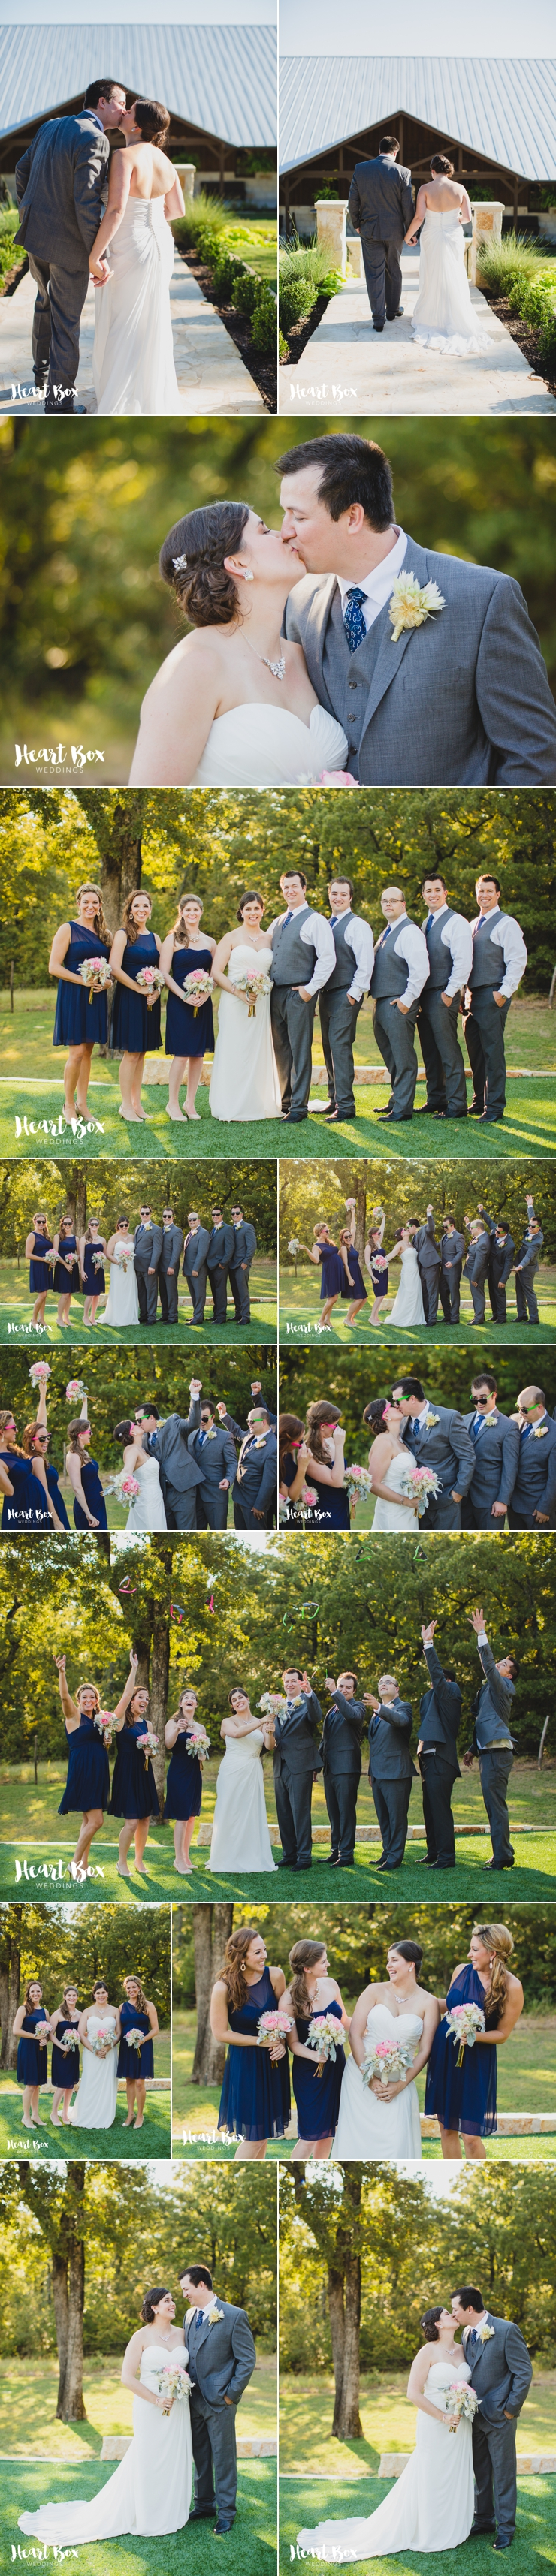 Waggoner Wedding Collages 9.jpg